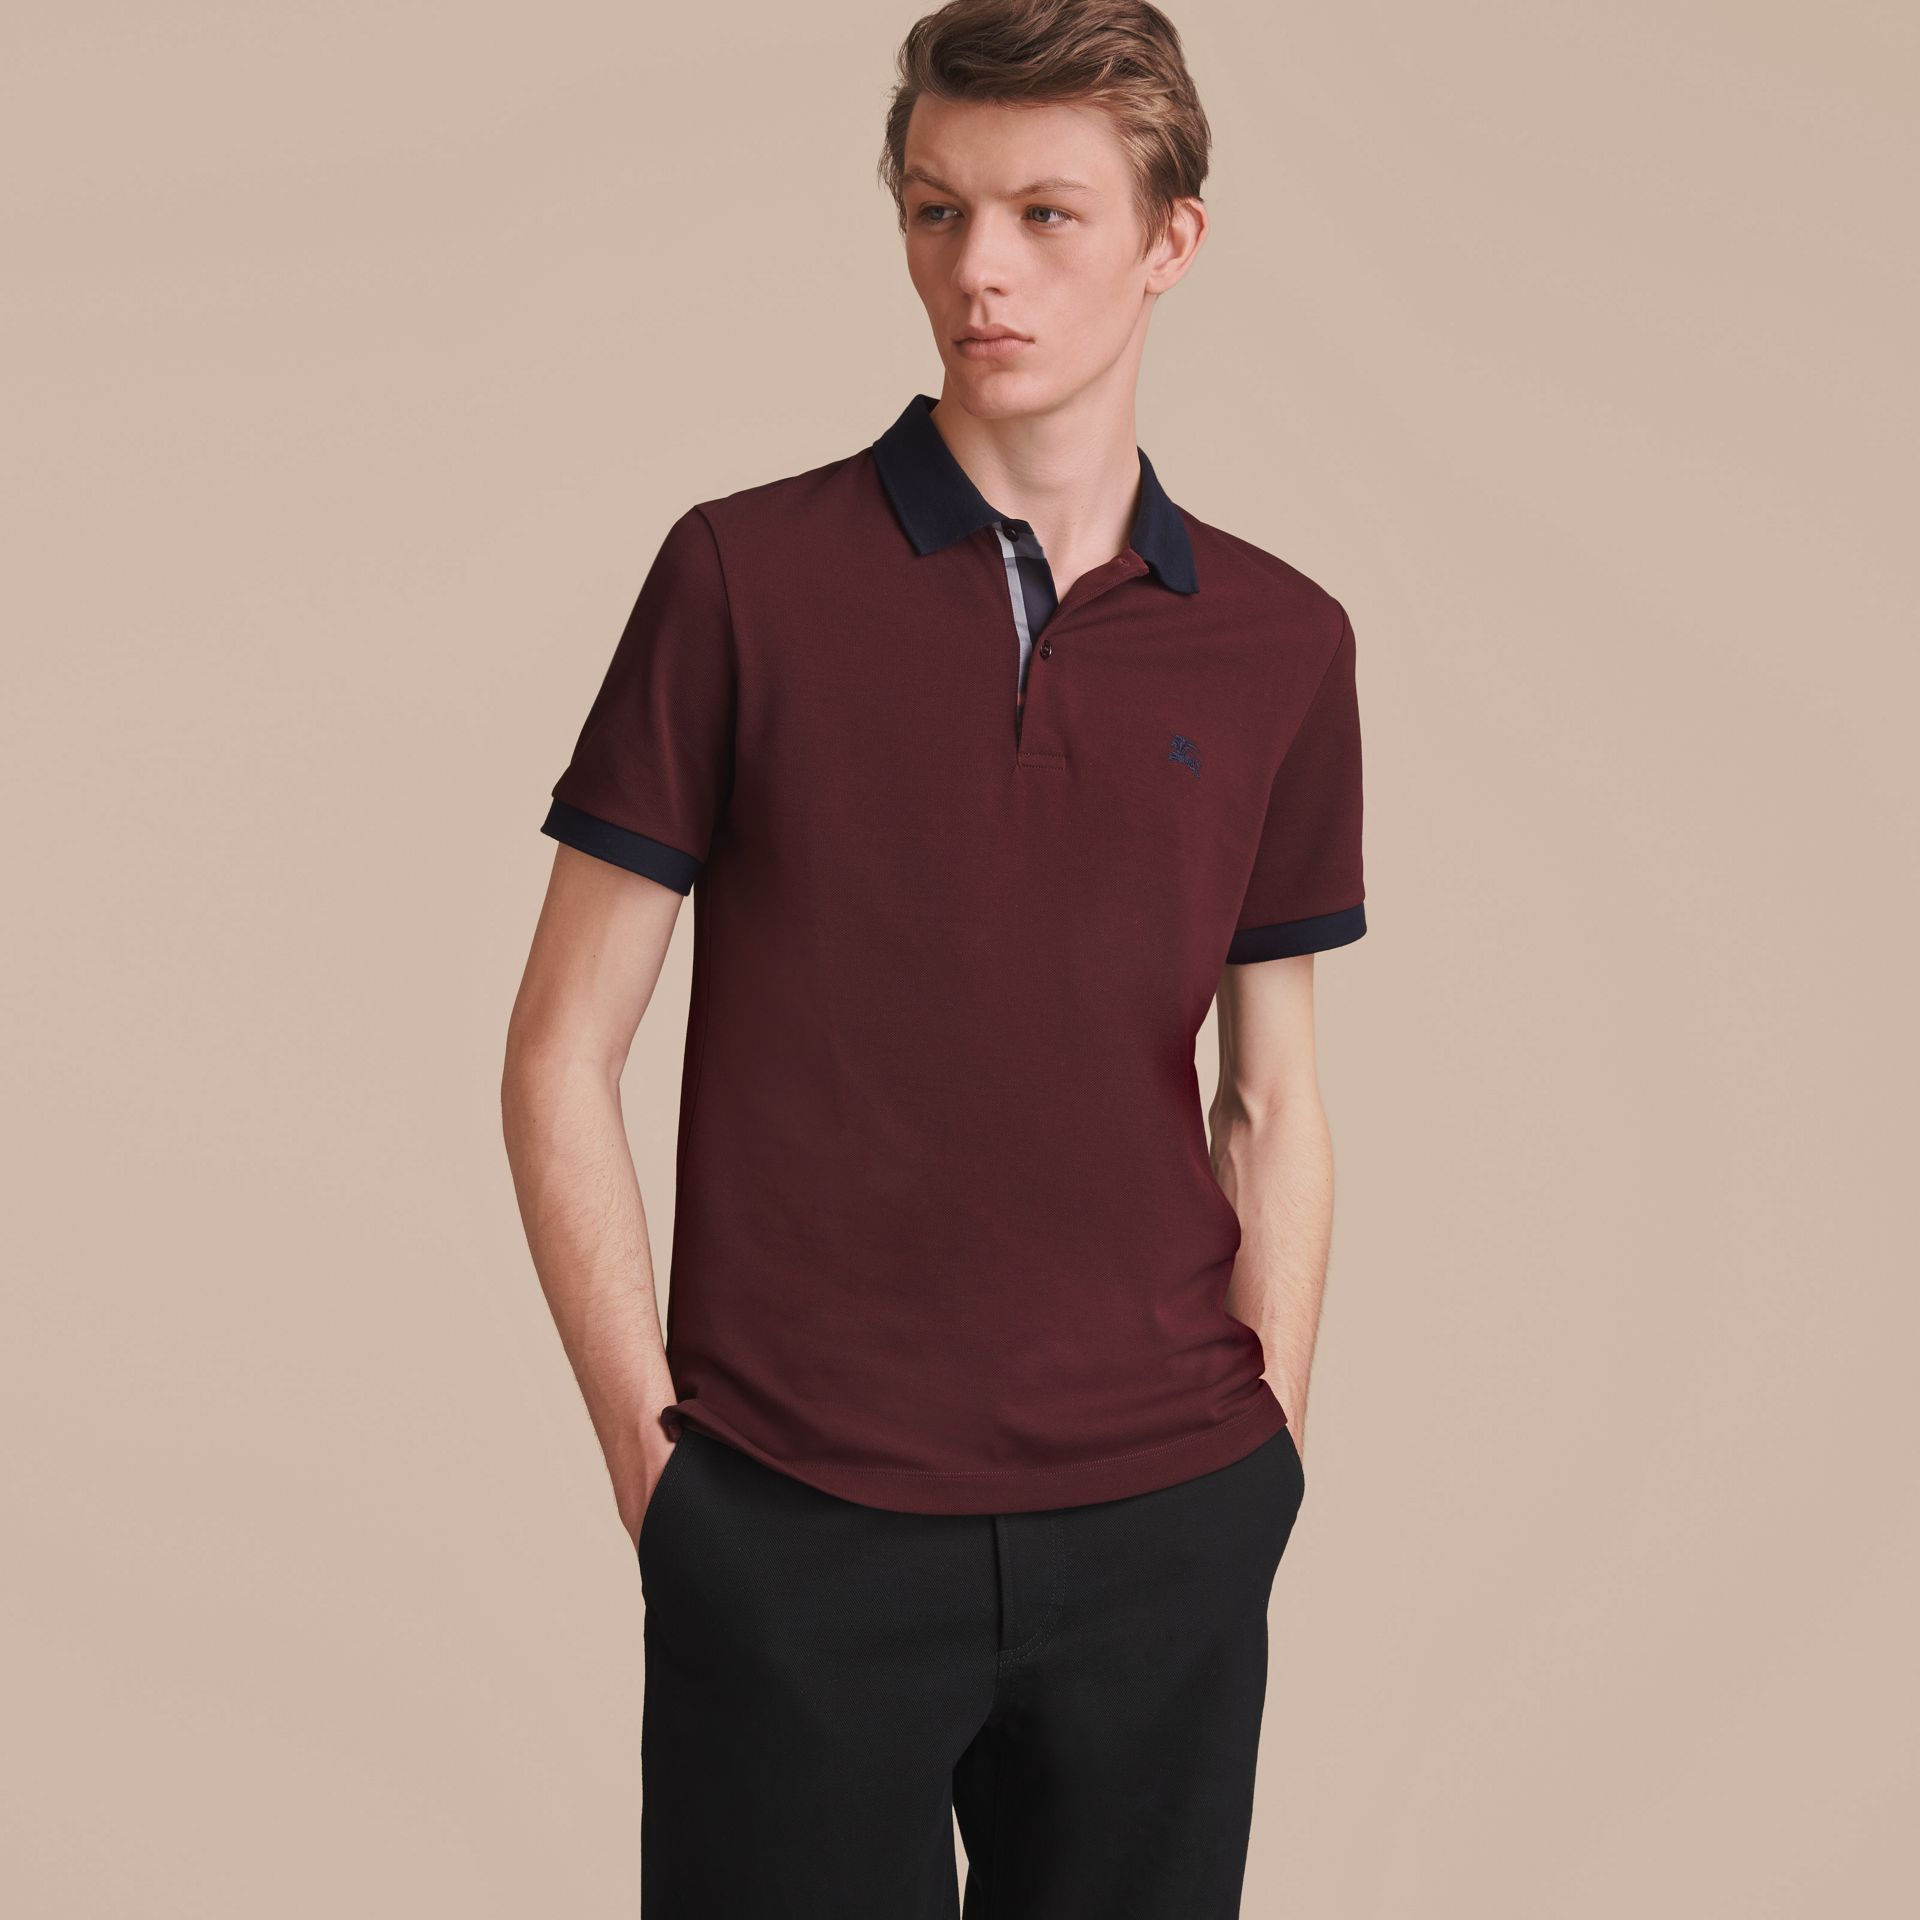 Polo bicolore en piqué de coton avec patte à motif check (Bordeaux Intense) - Homme | Burberry - photo de la galerie 6